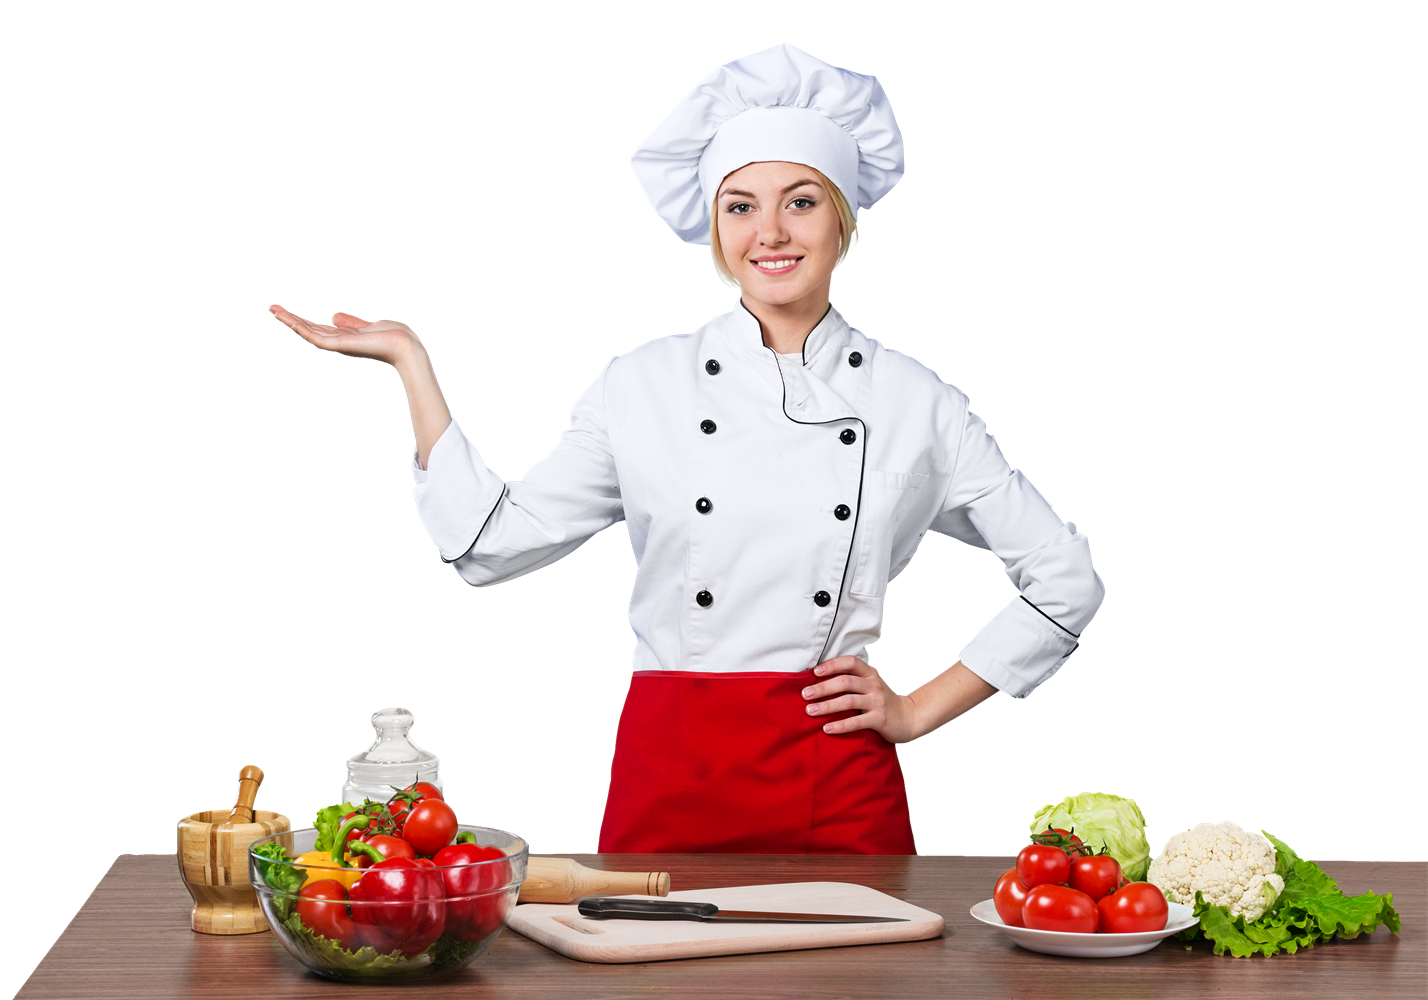 Chef cooking png. Image